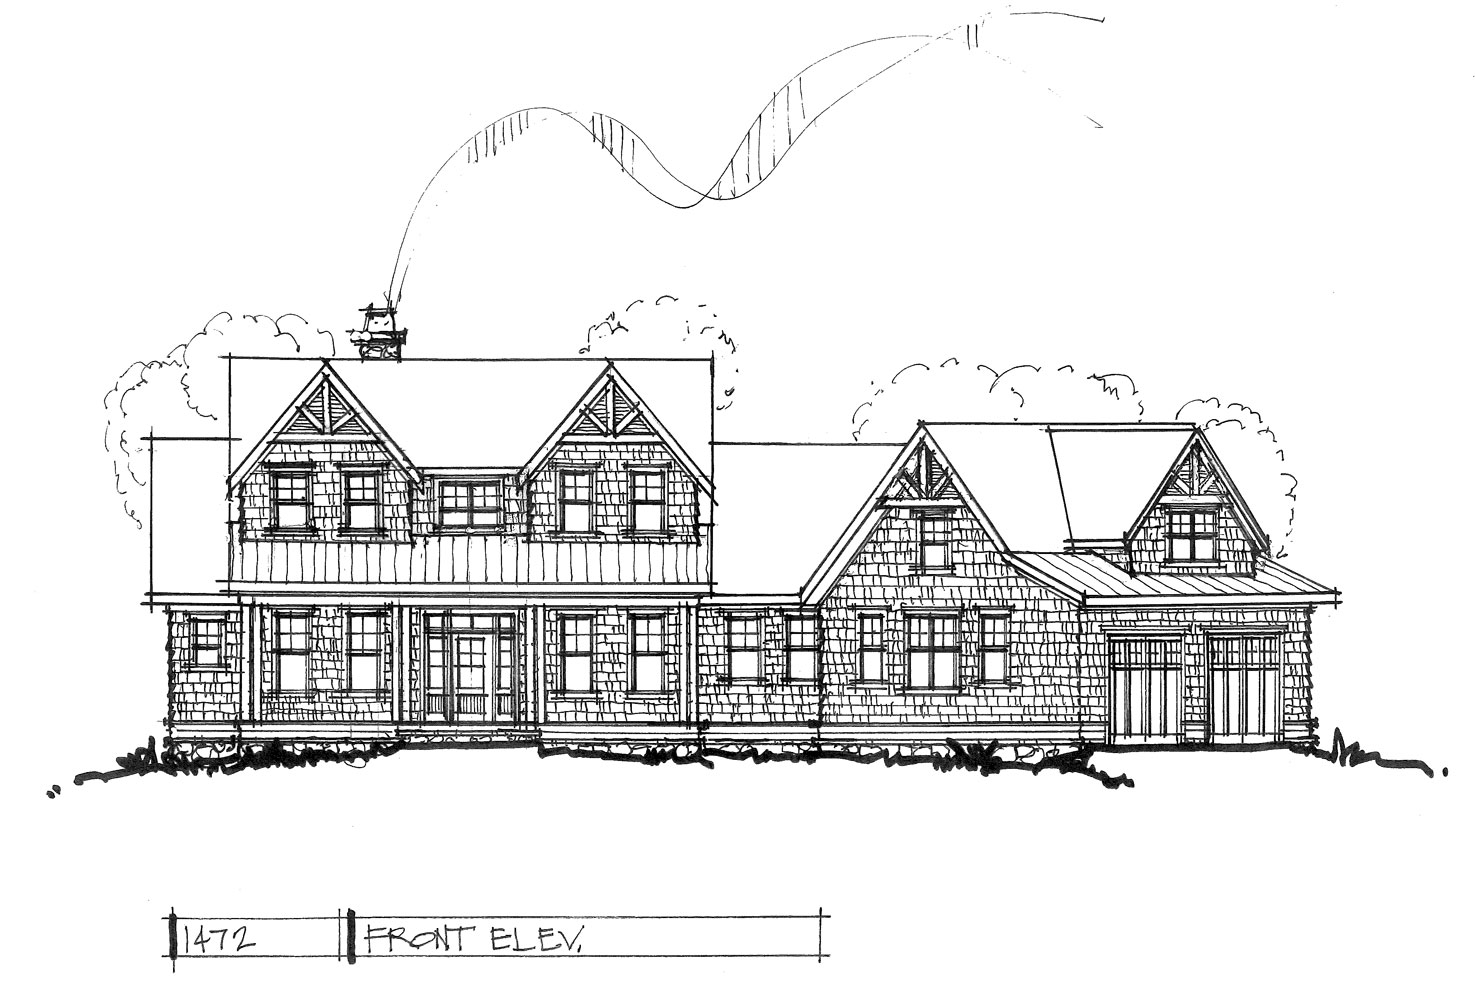 Check out the front elevation of house plan 1472.